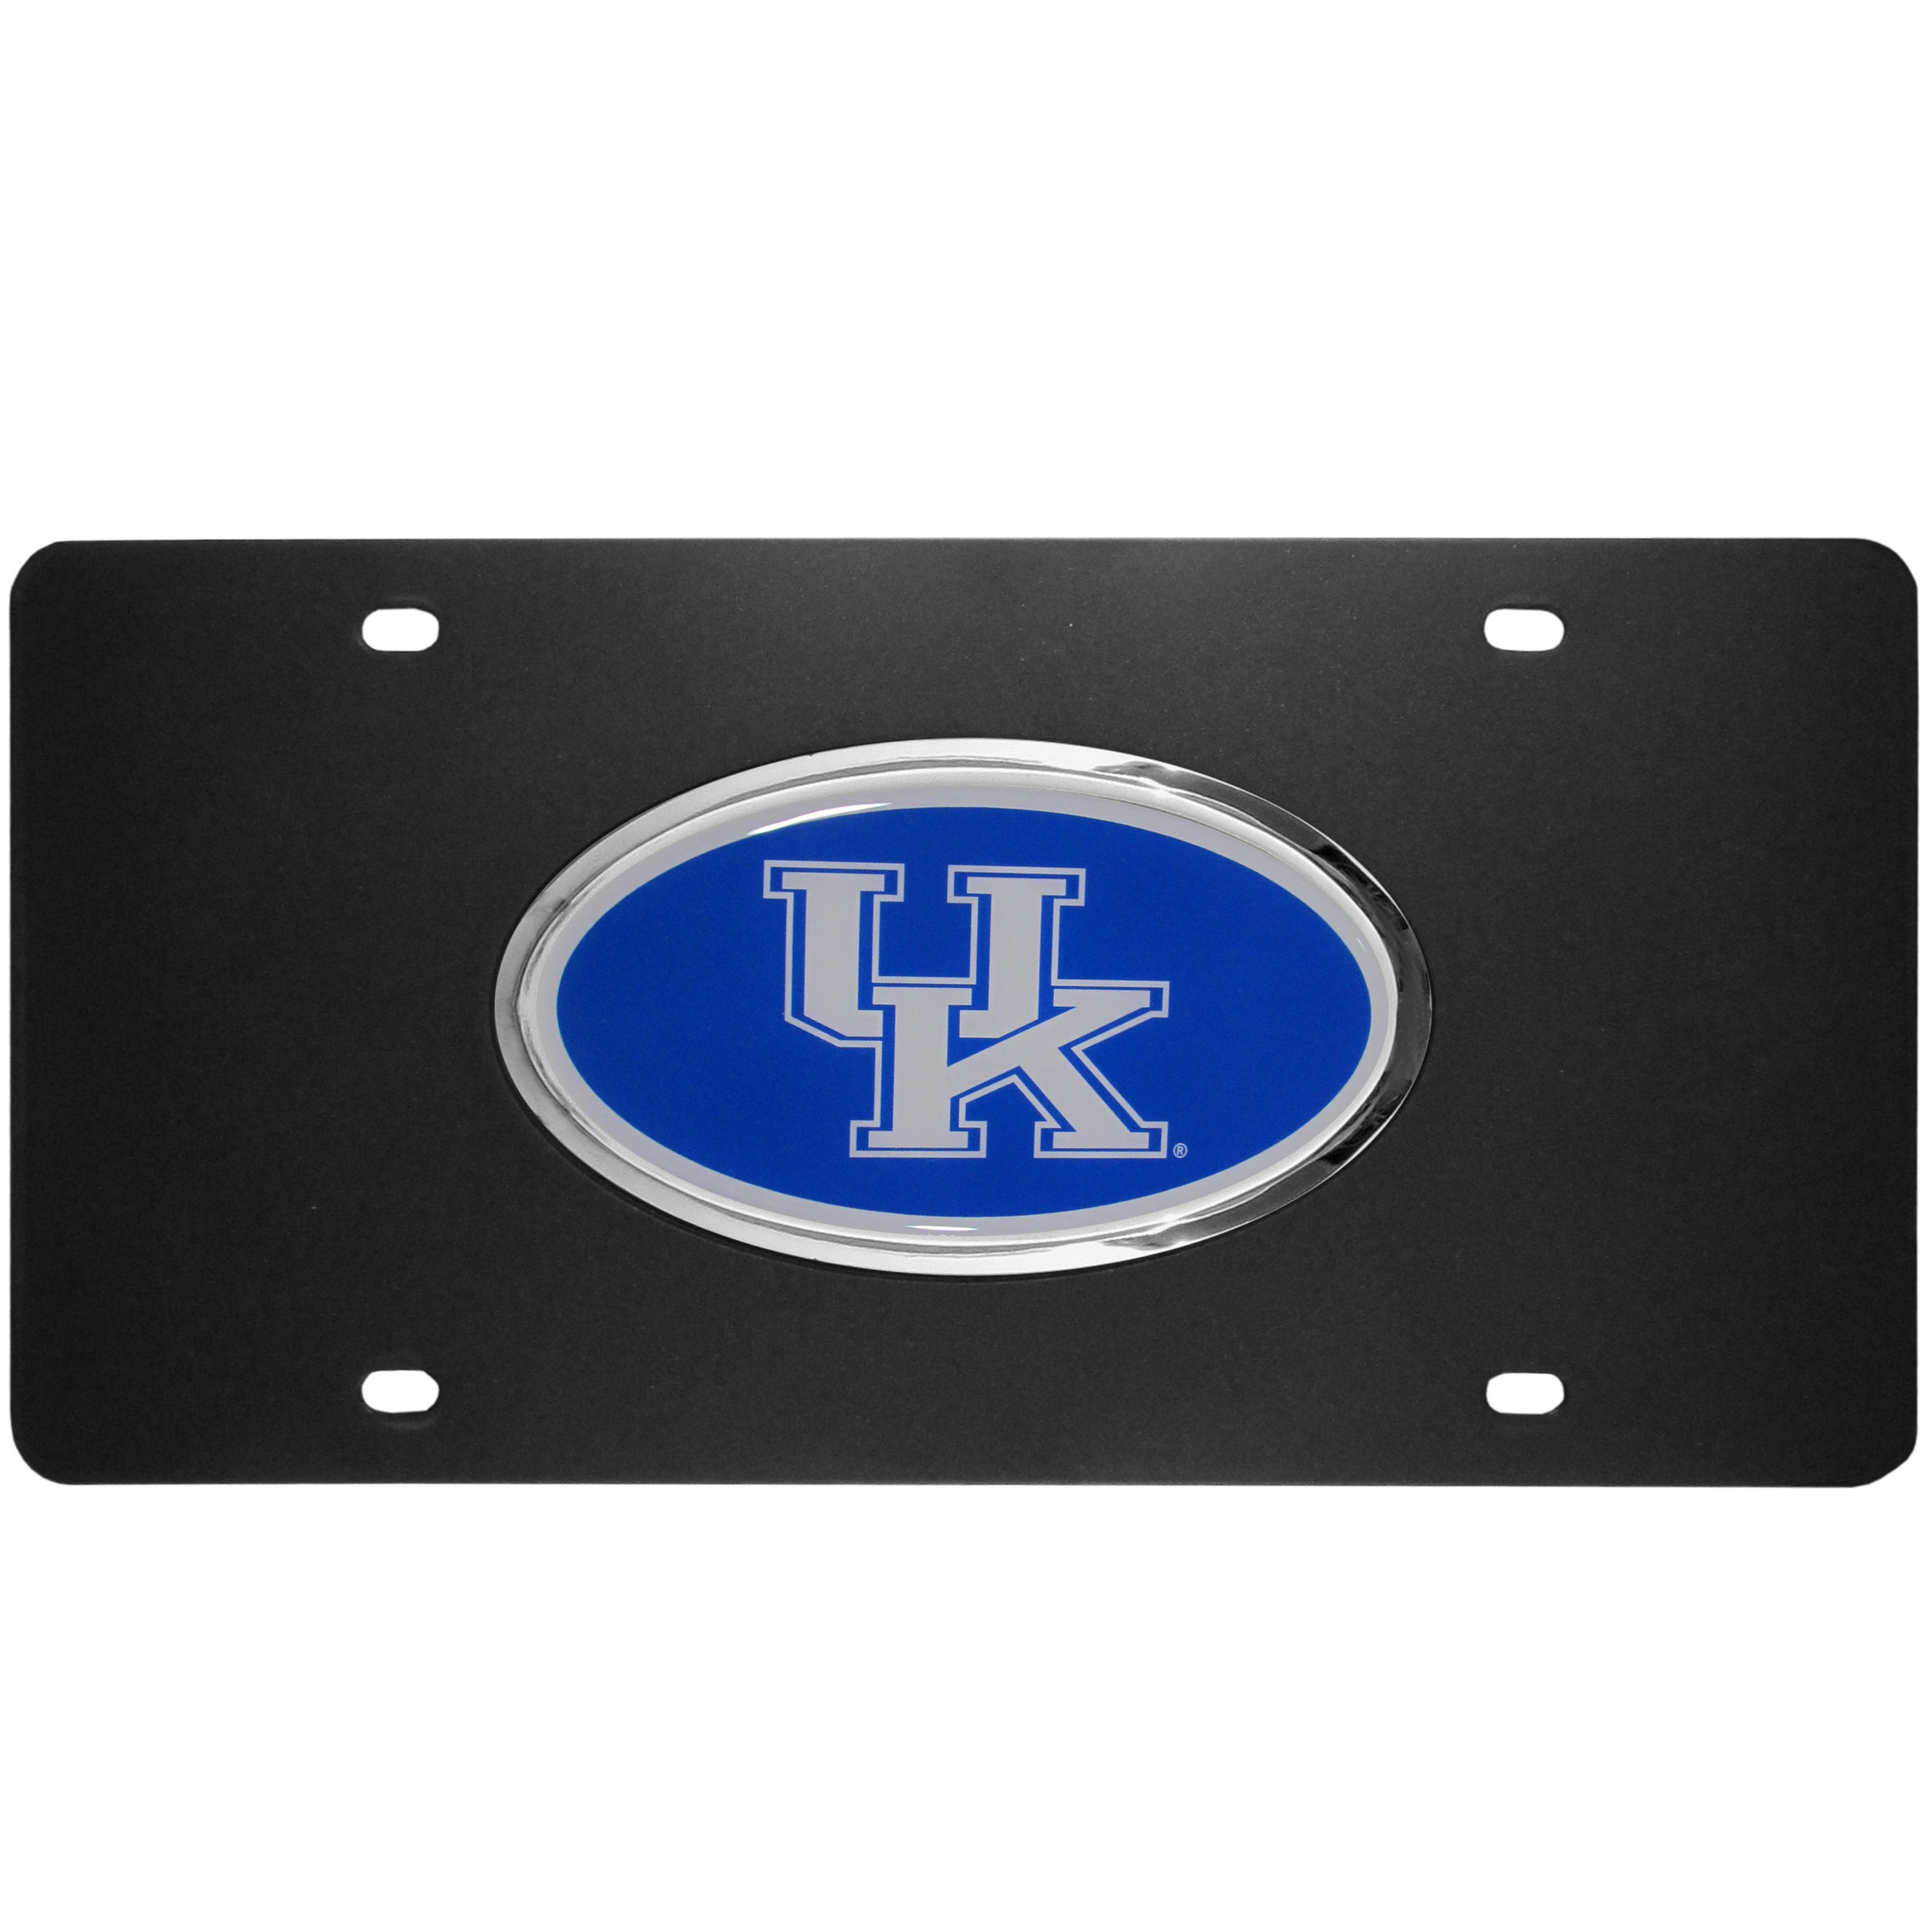 Kentucky Wildcats Acrylic License Plate - Our Kentucky Wildcats acrylic license plate is a step above the rest. It is made of thick, durable acrylic with a matte black finish and raised chrome saddle for the extra large team emblem.